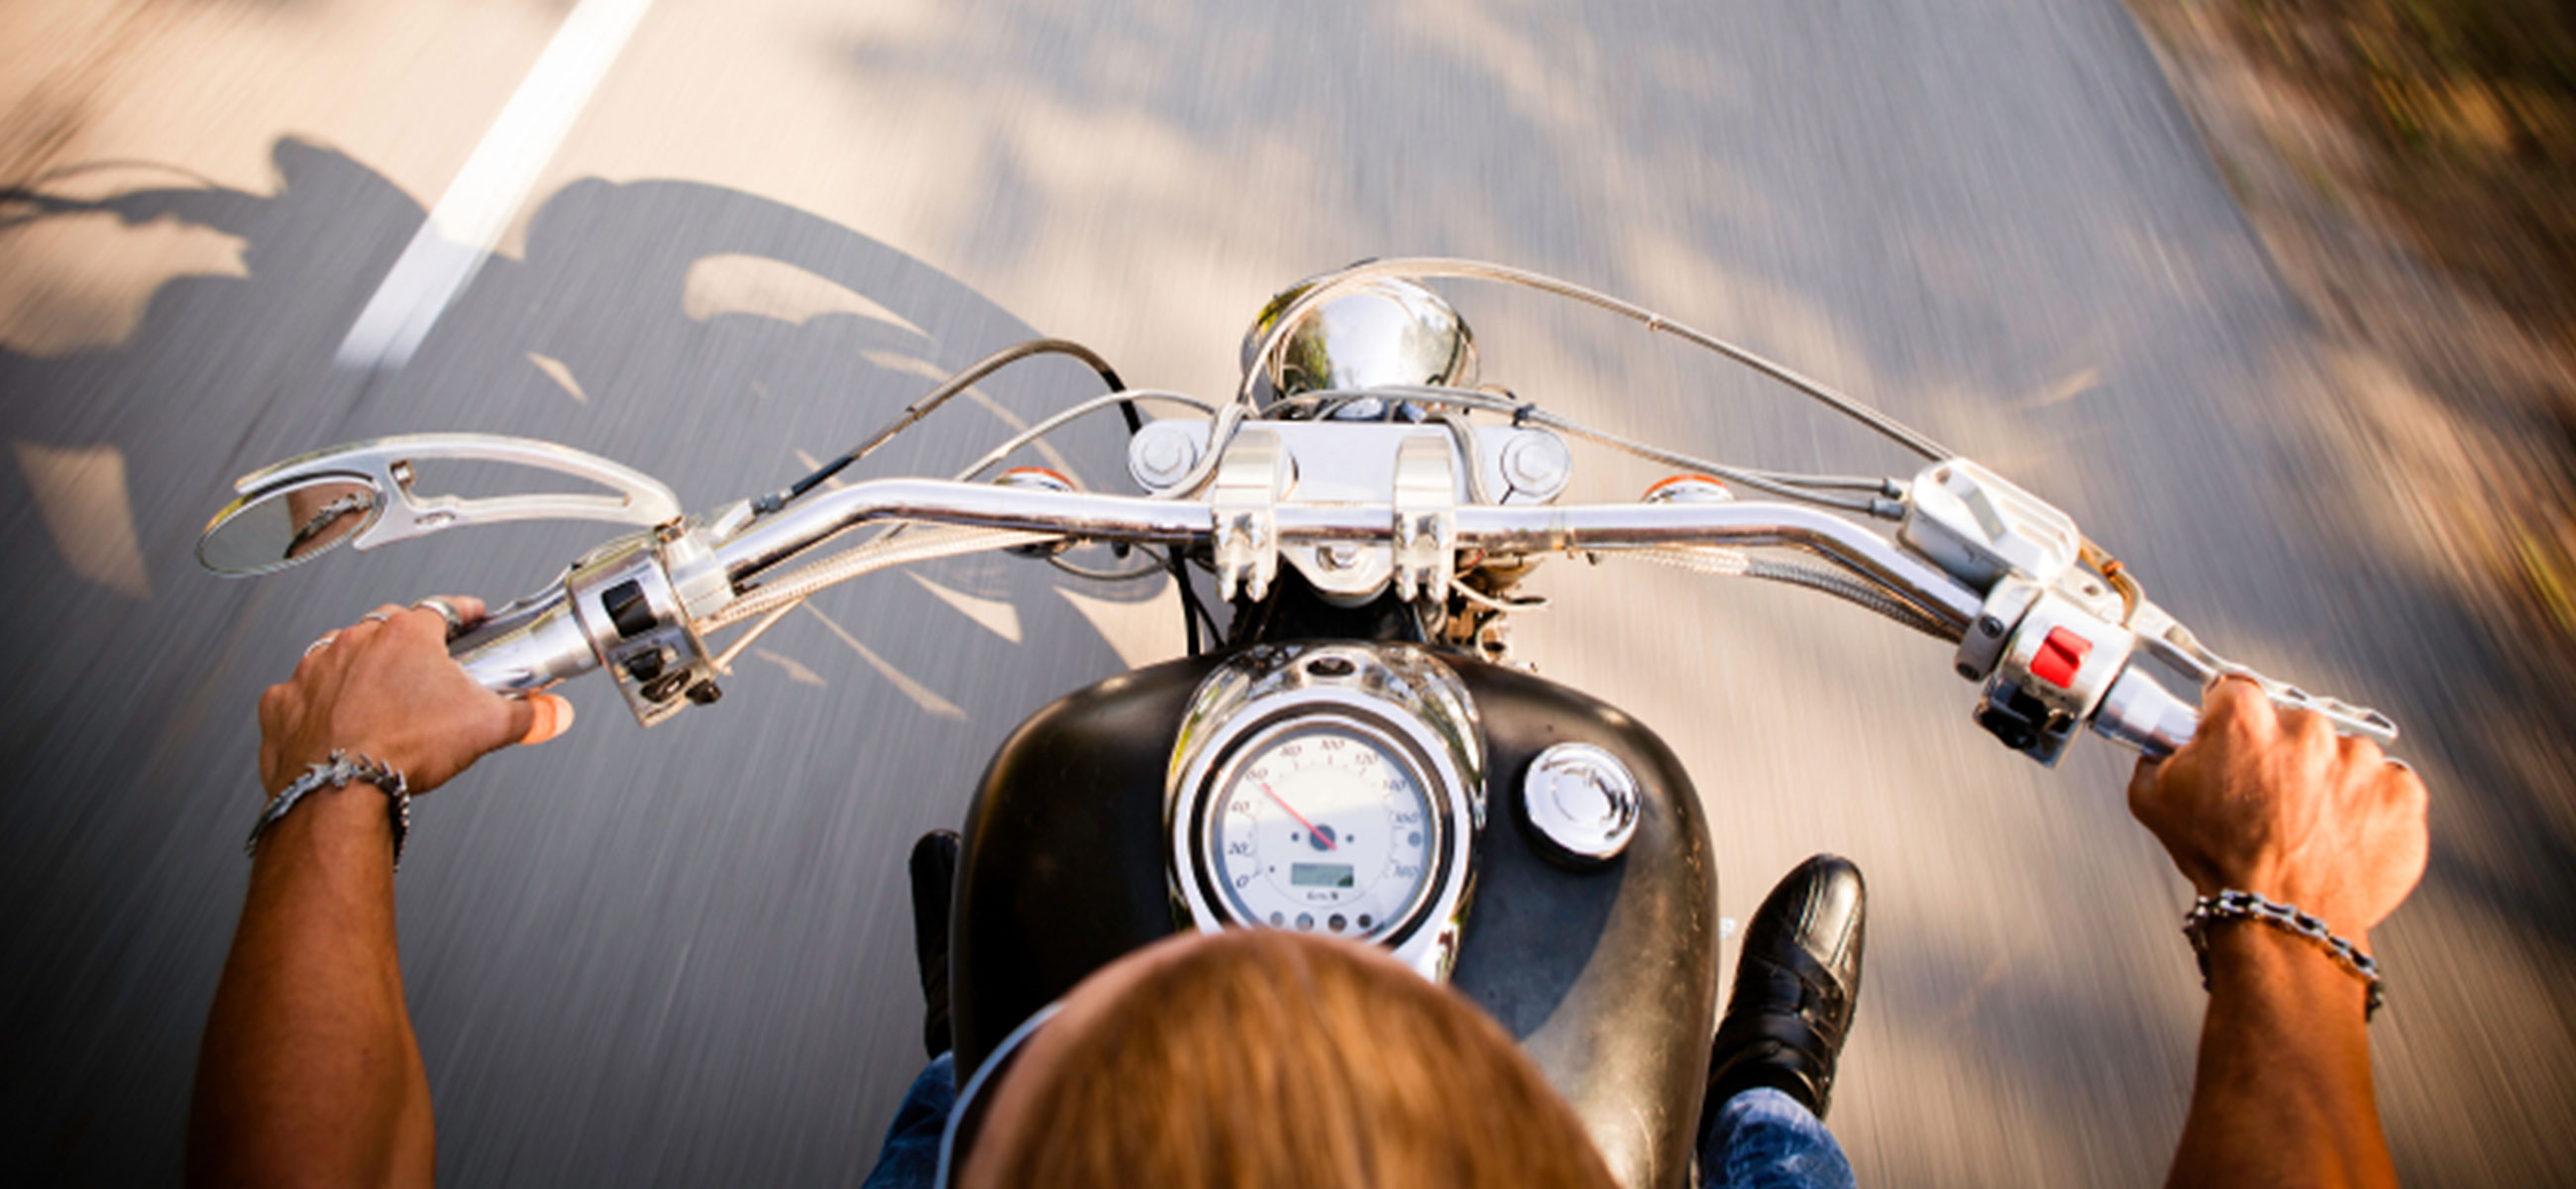 Florida Motorcycle Insurance Coverage